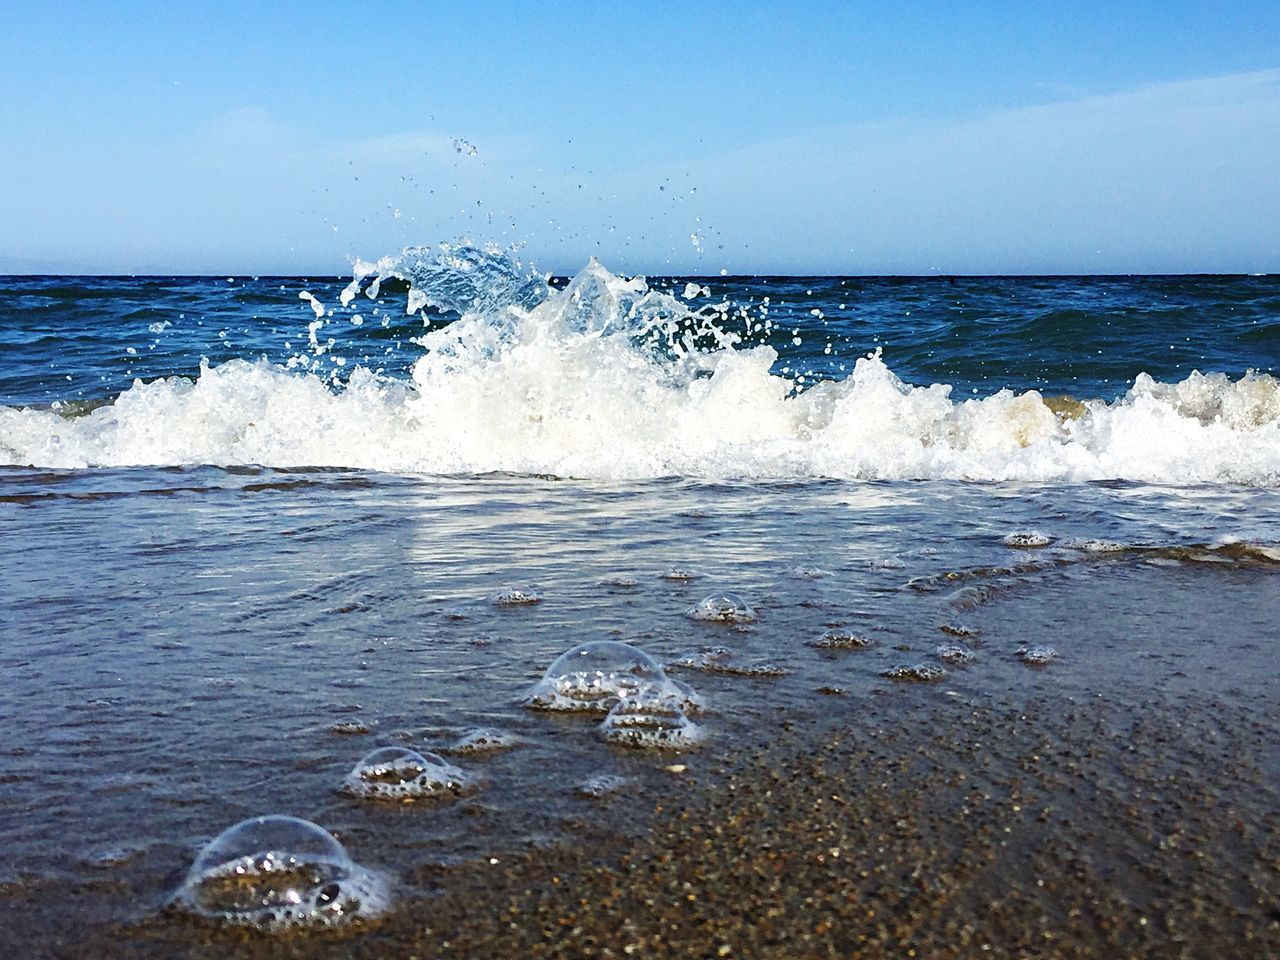 Sea Splashing Wave Water Waterfront Blue White Dancing Waves Bubbles On Sand Wet Sand Horizon Over Water Outdoors